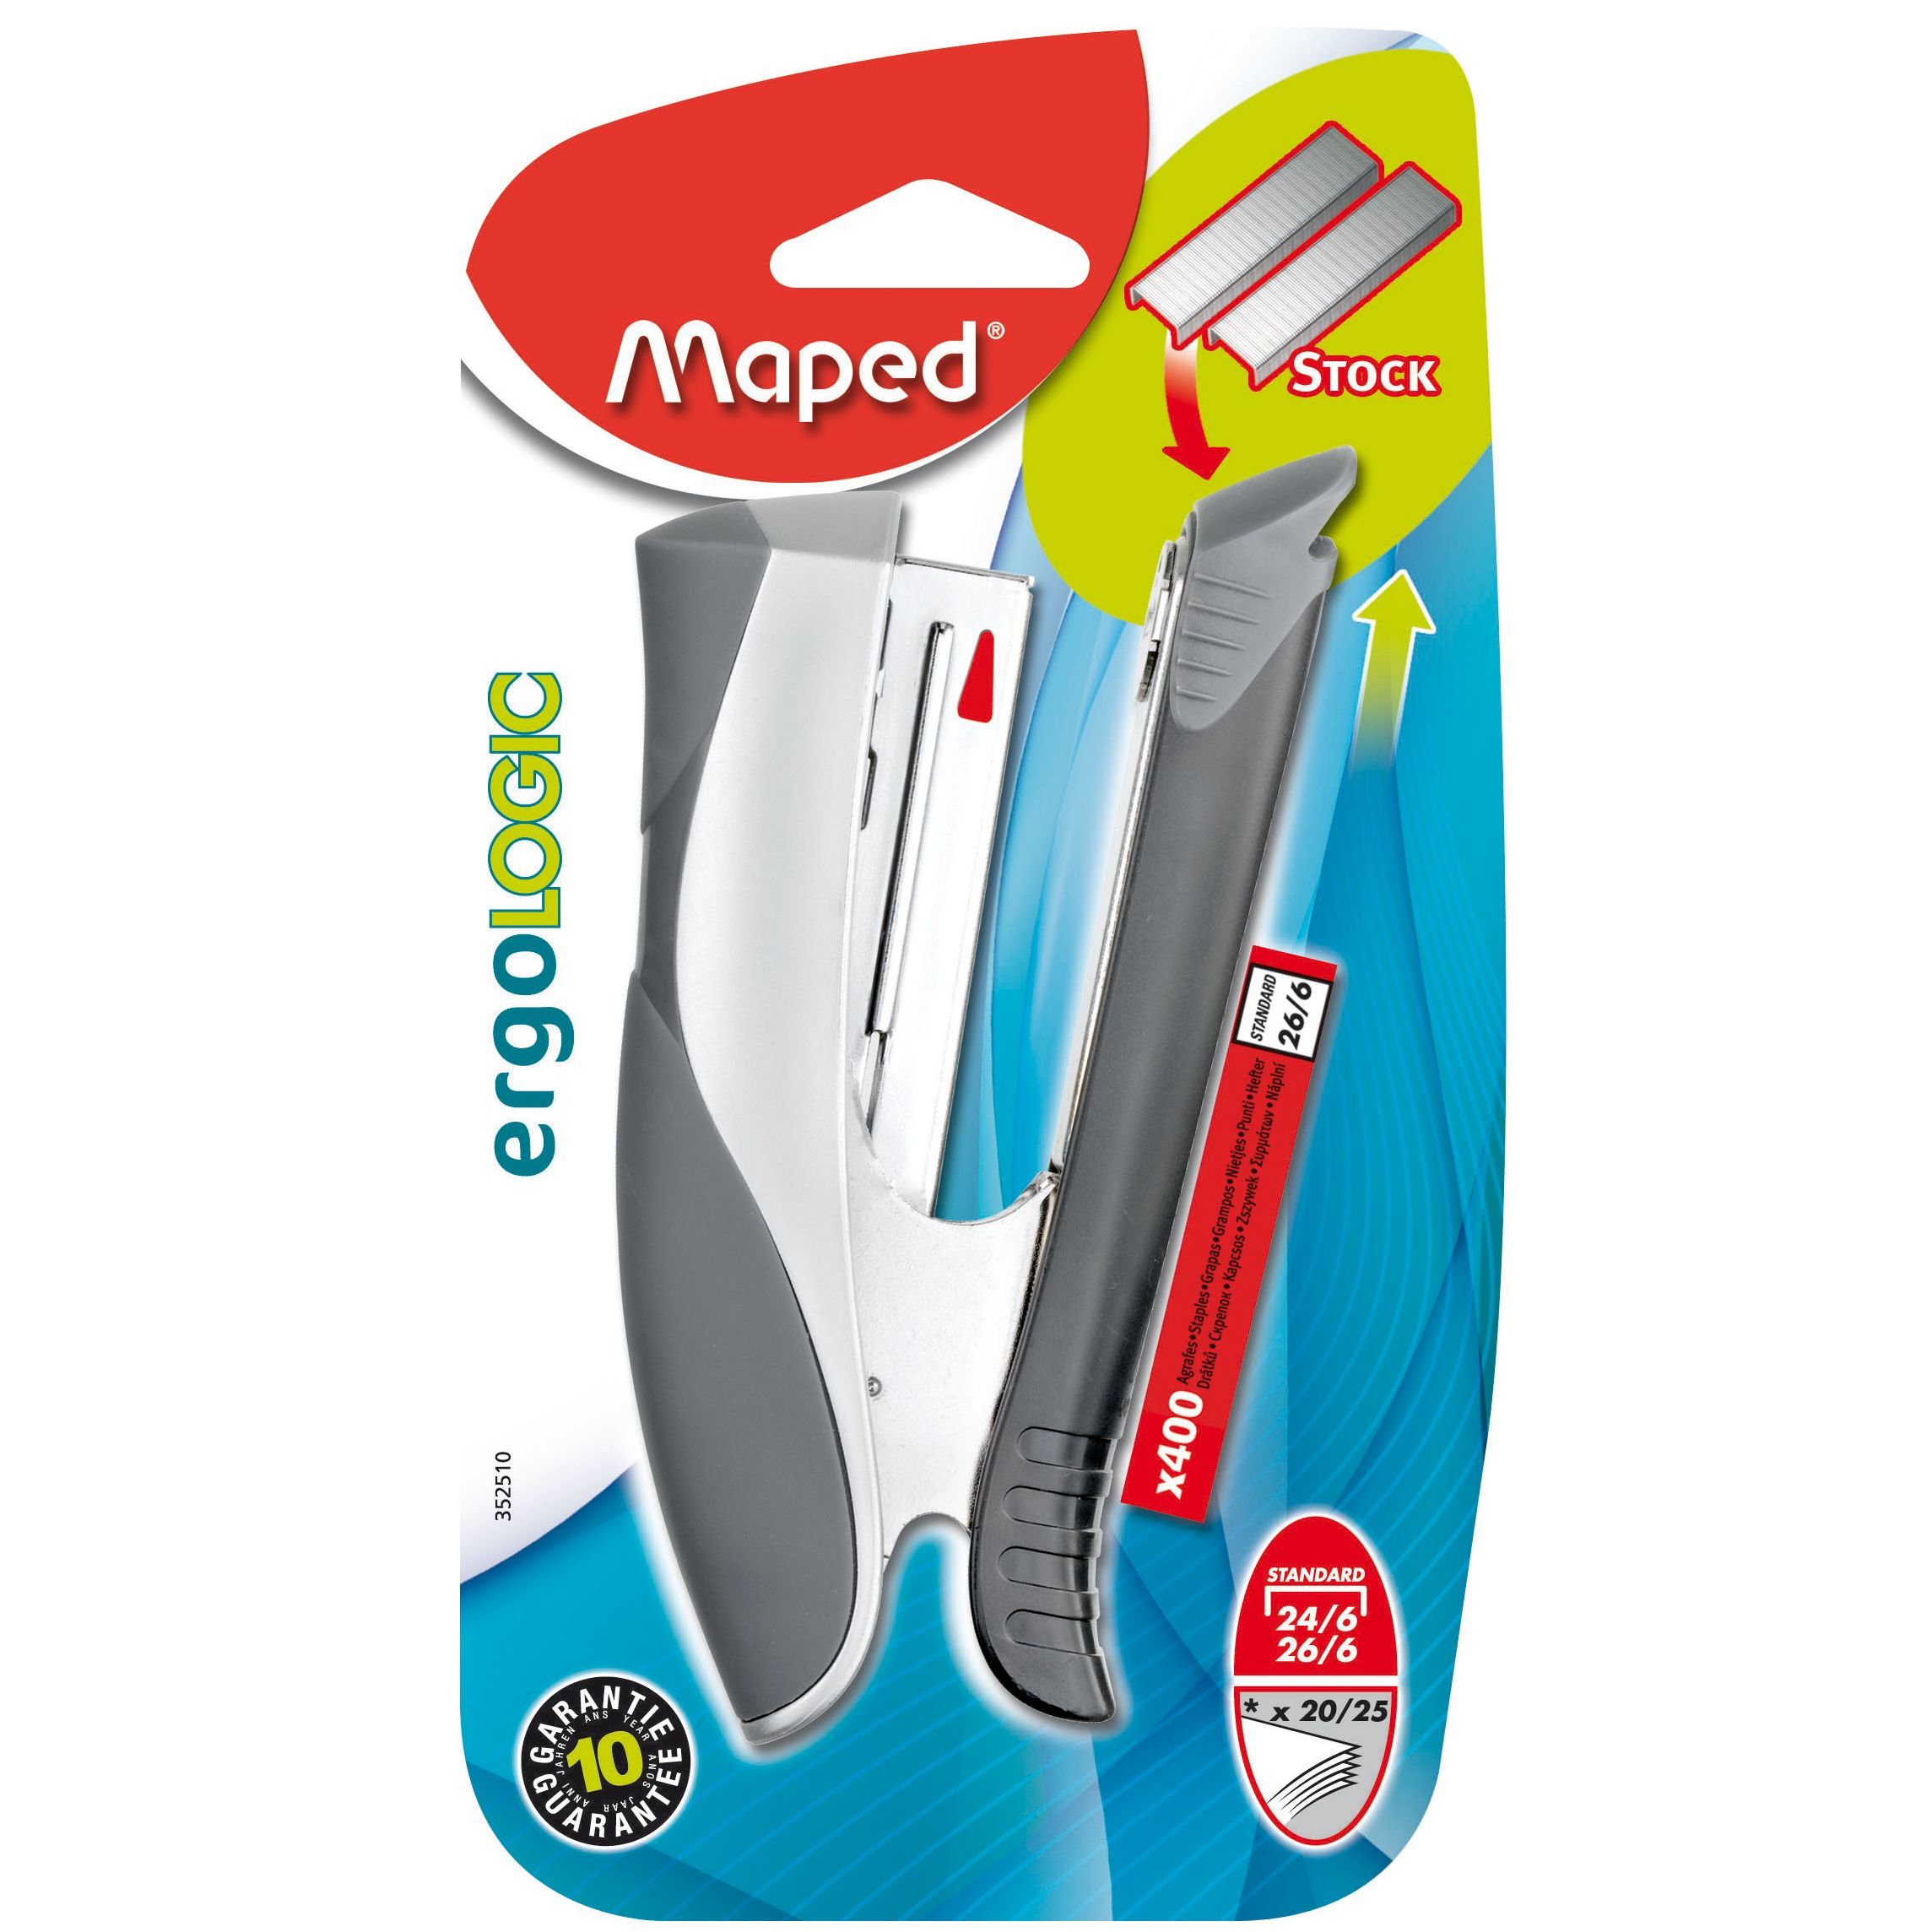 Maped Maped Ergologic Stapler